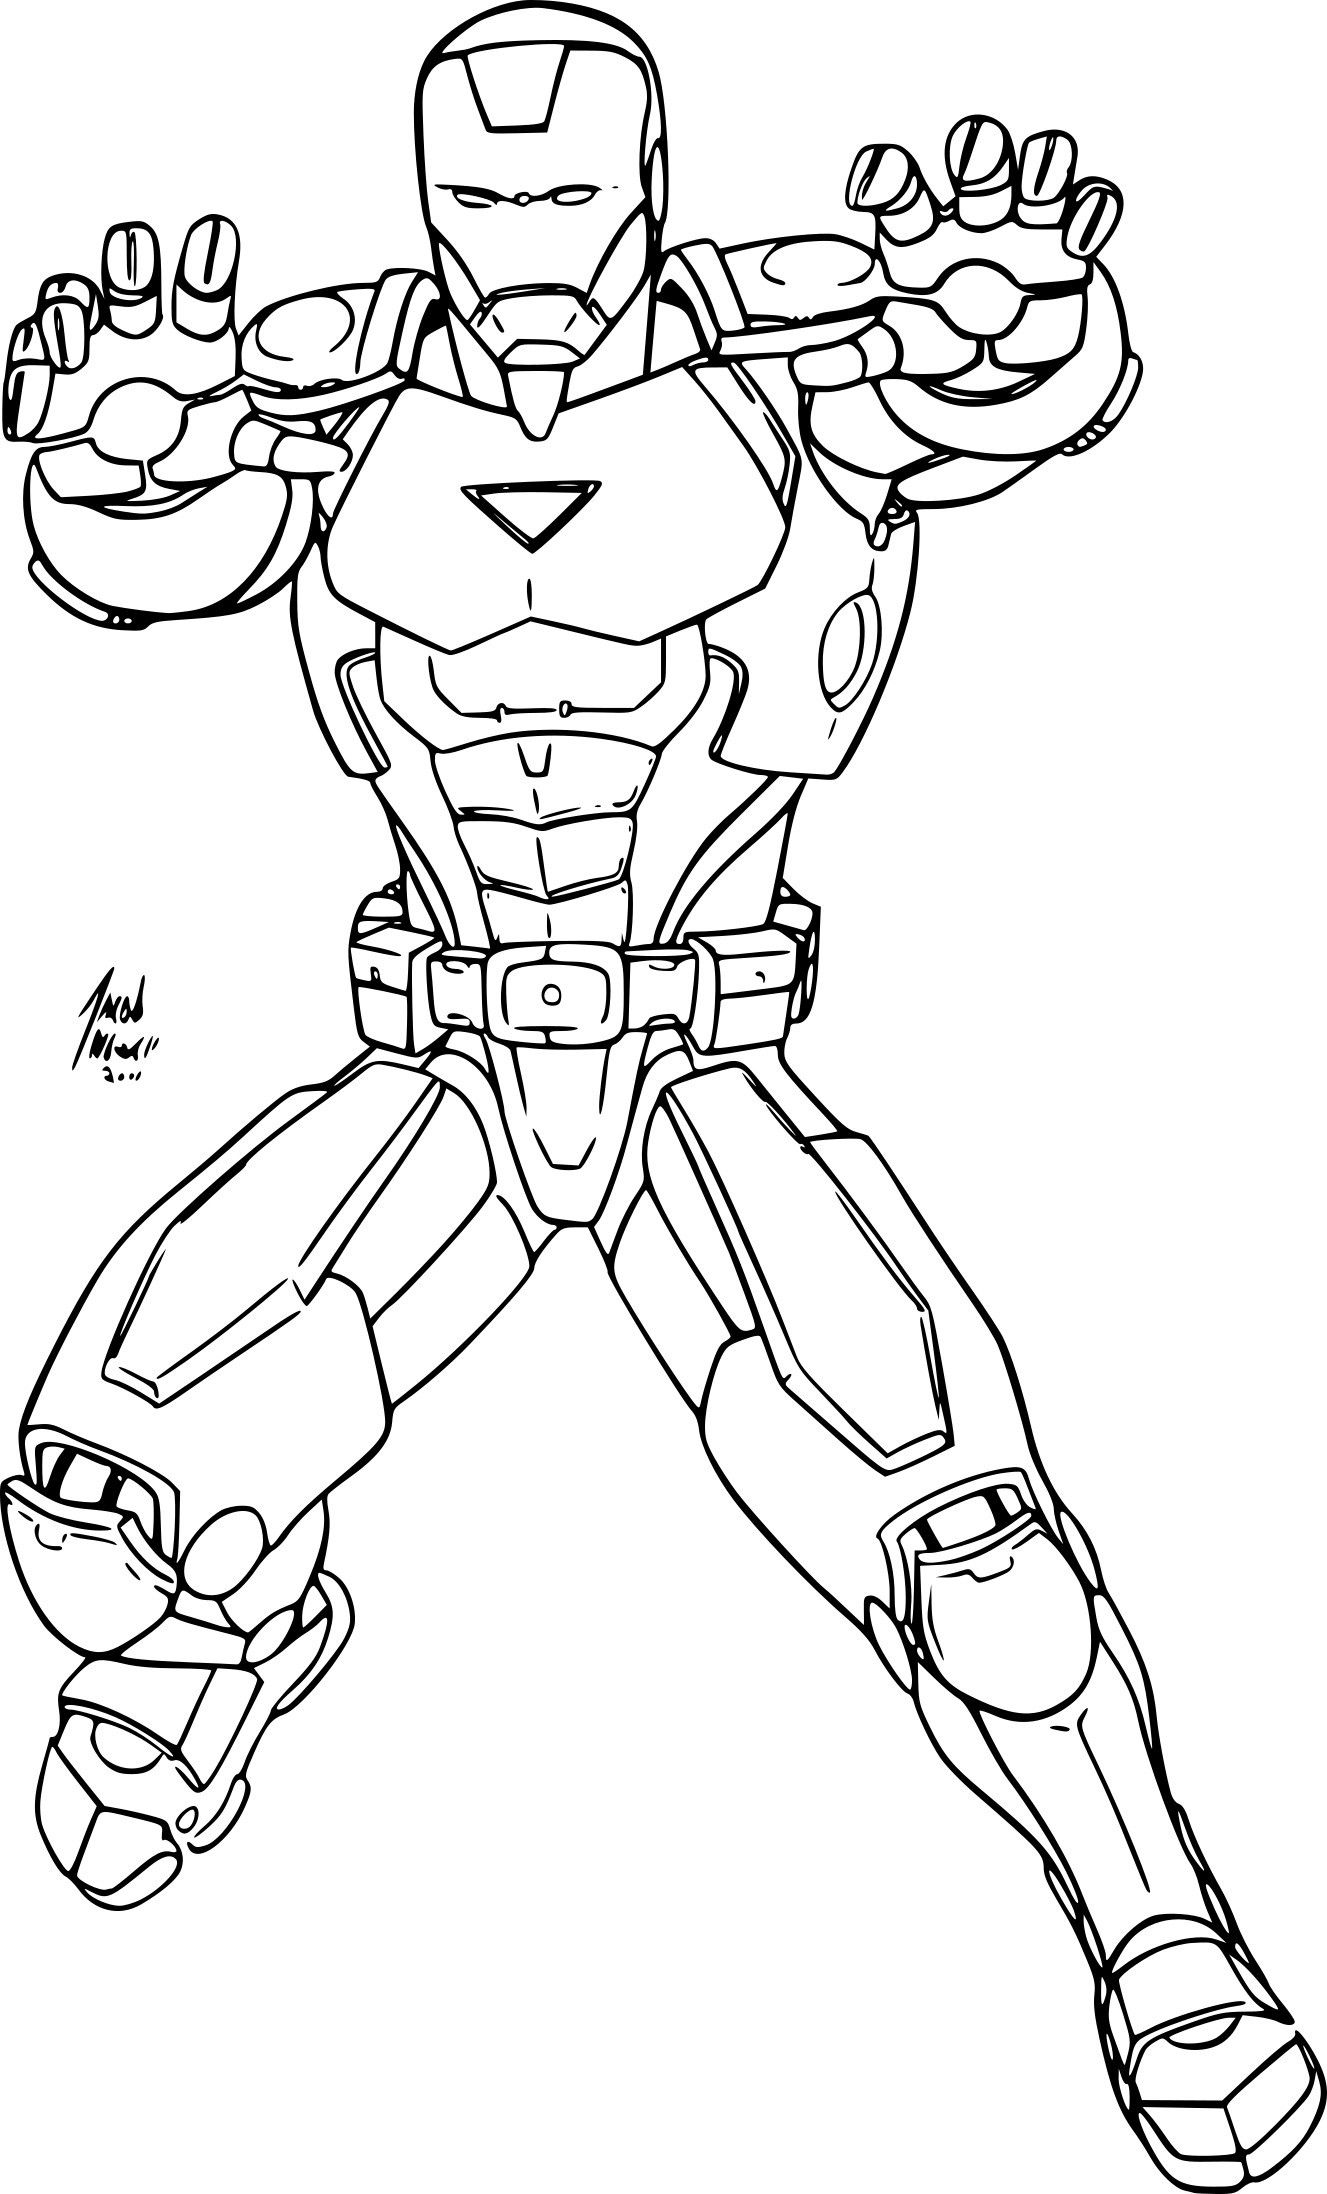 Iron Man And Hulk Coloring Pages Avengers Coloring Pages Hulk Coloring Pages Avengers Coloring